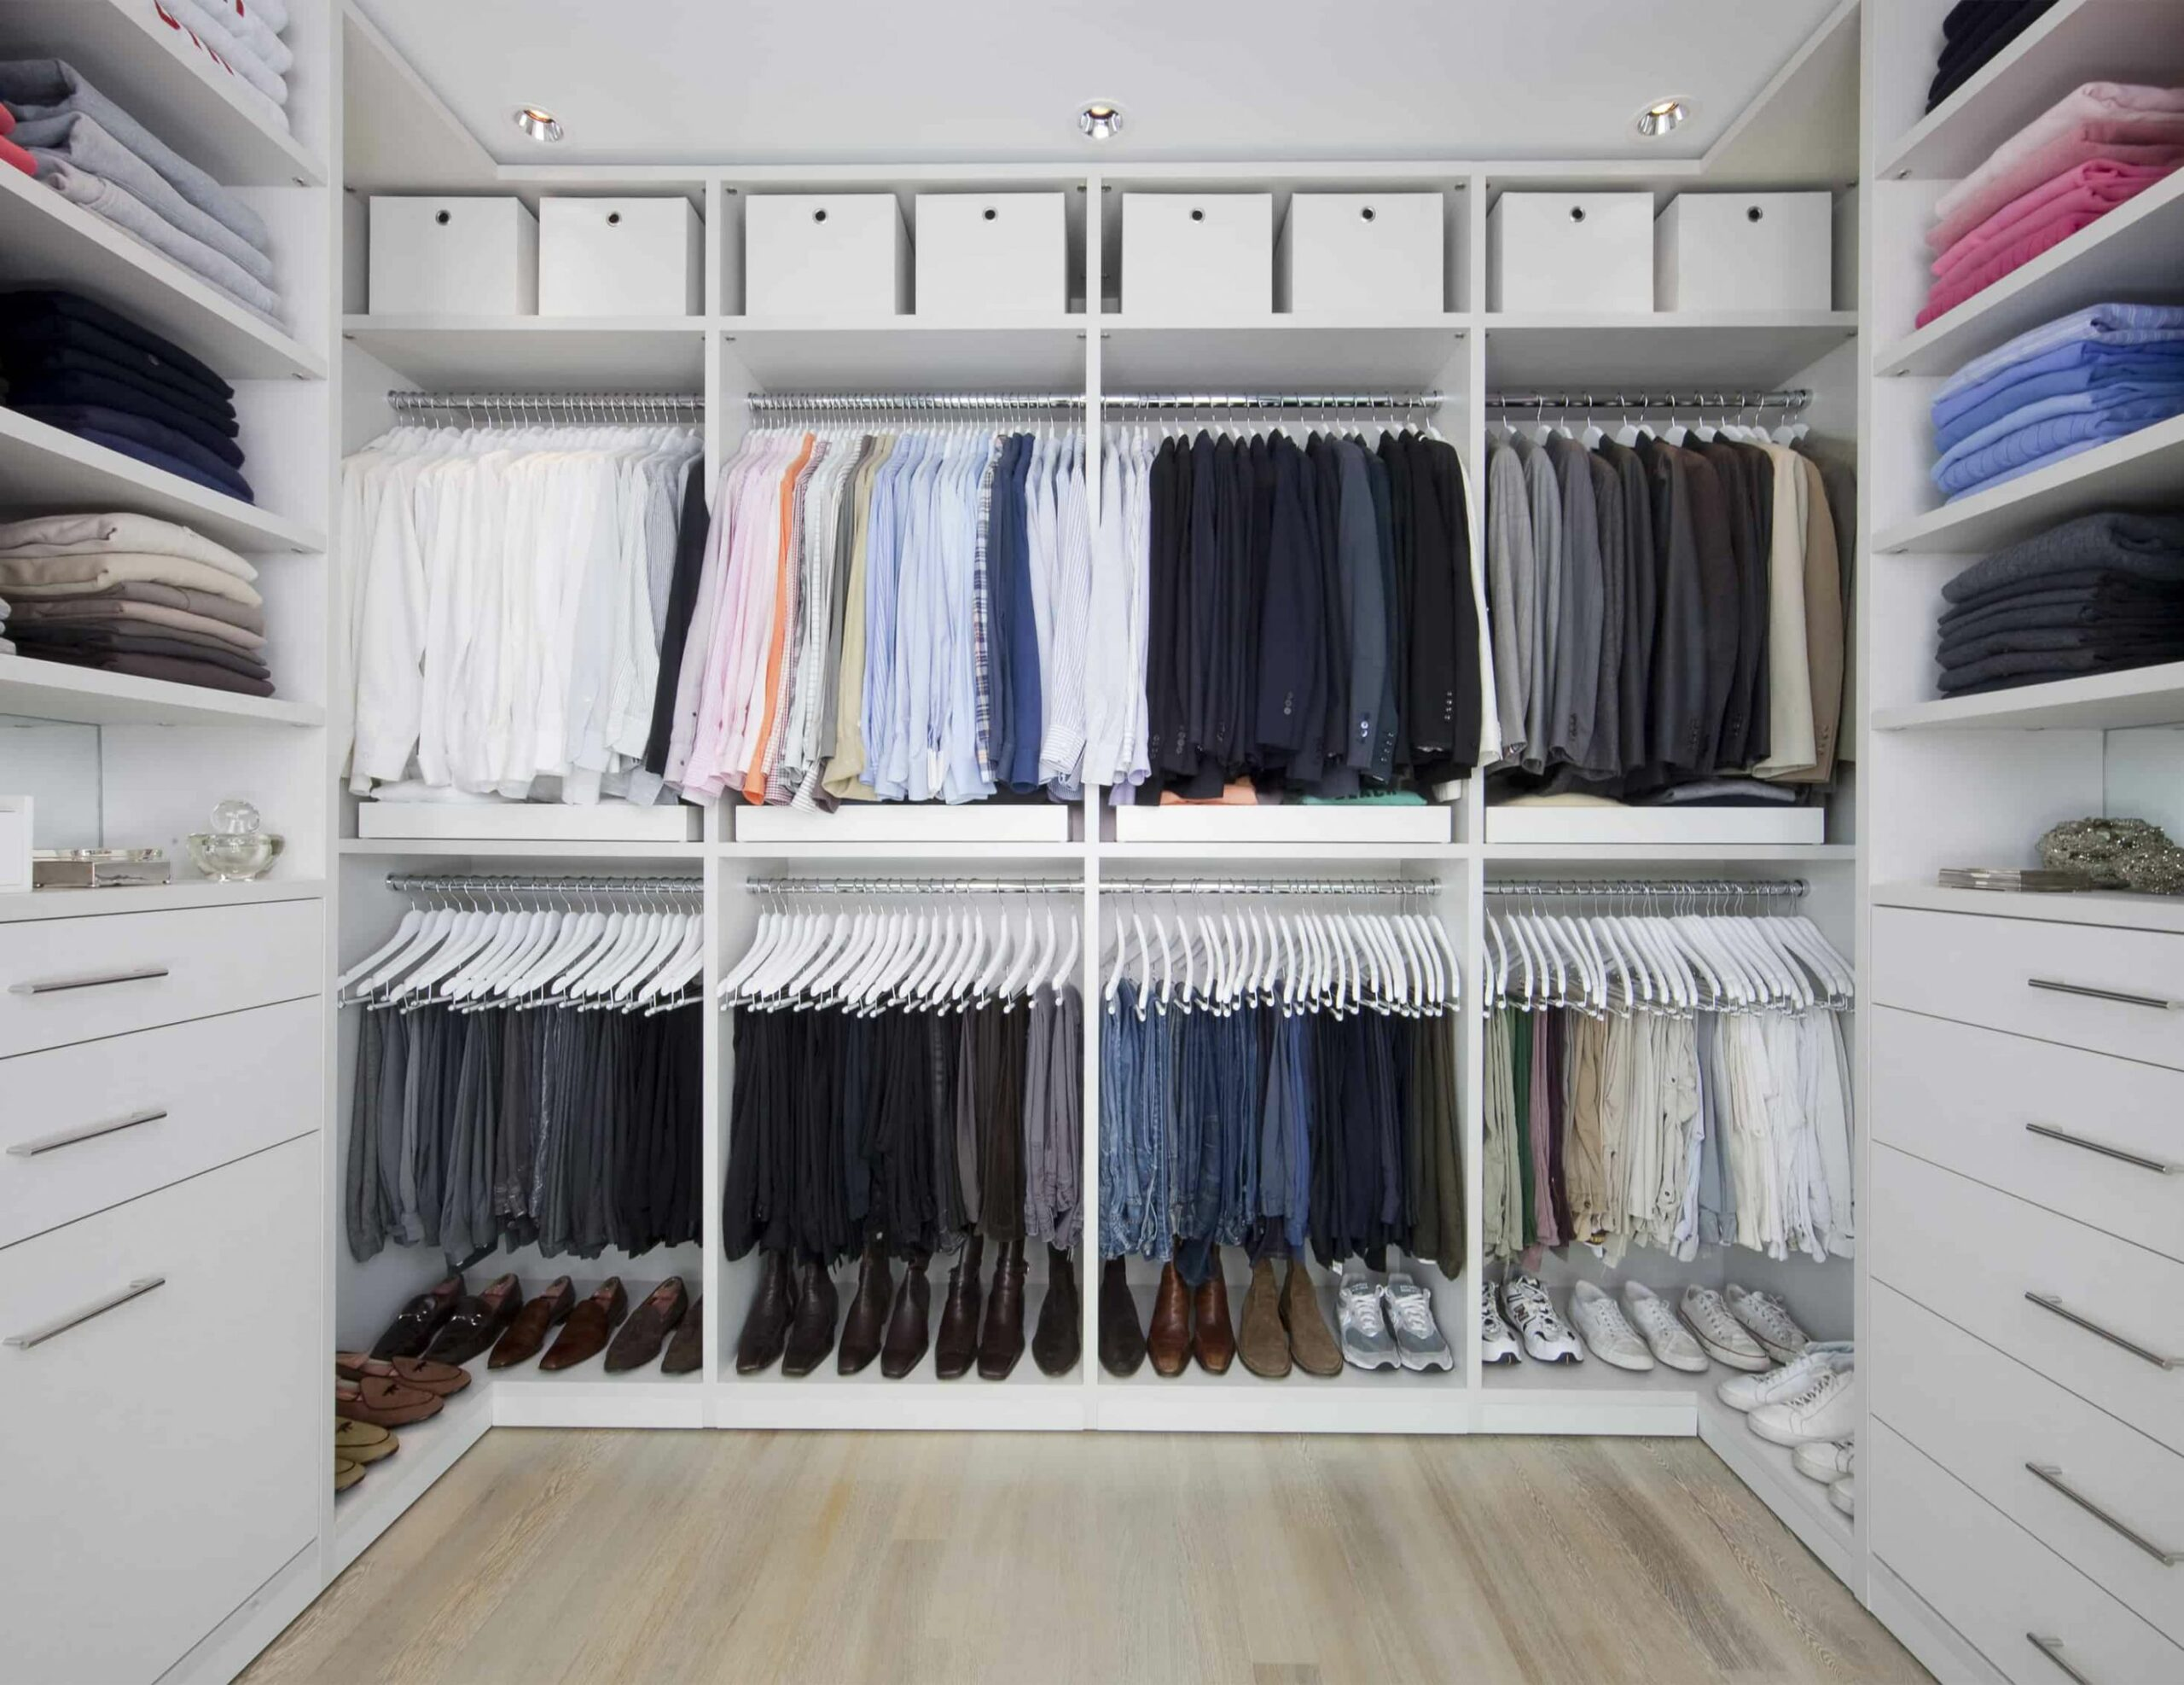 Closet organization ideas to help you get the most out of your space - closet ideas images